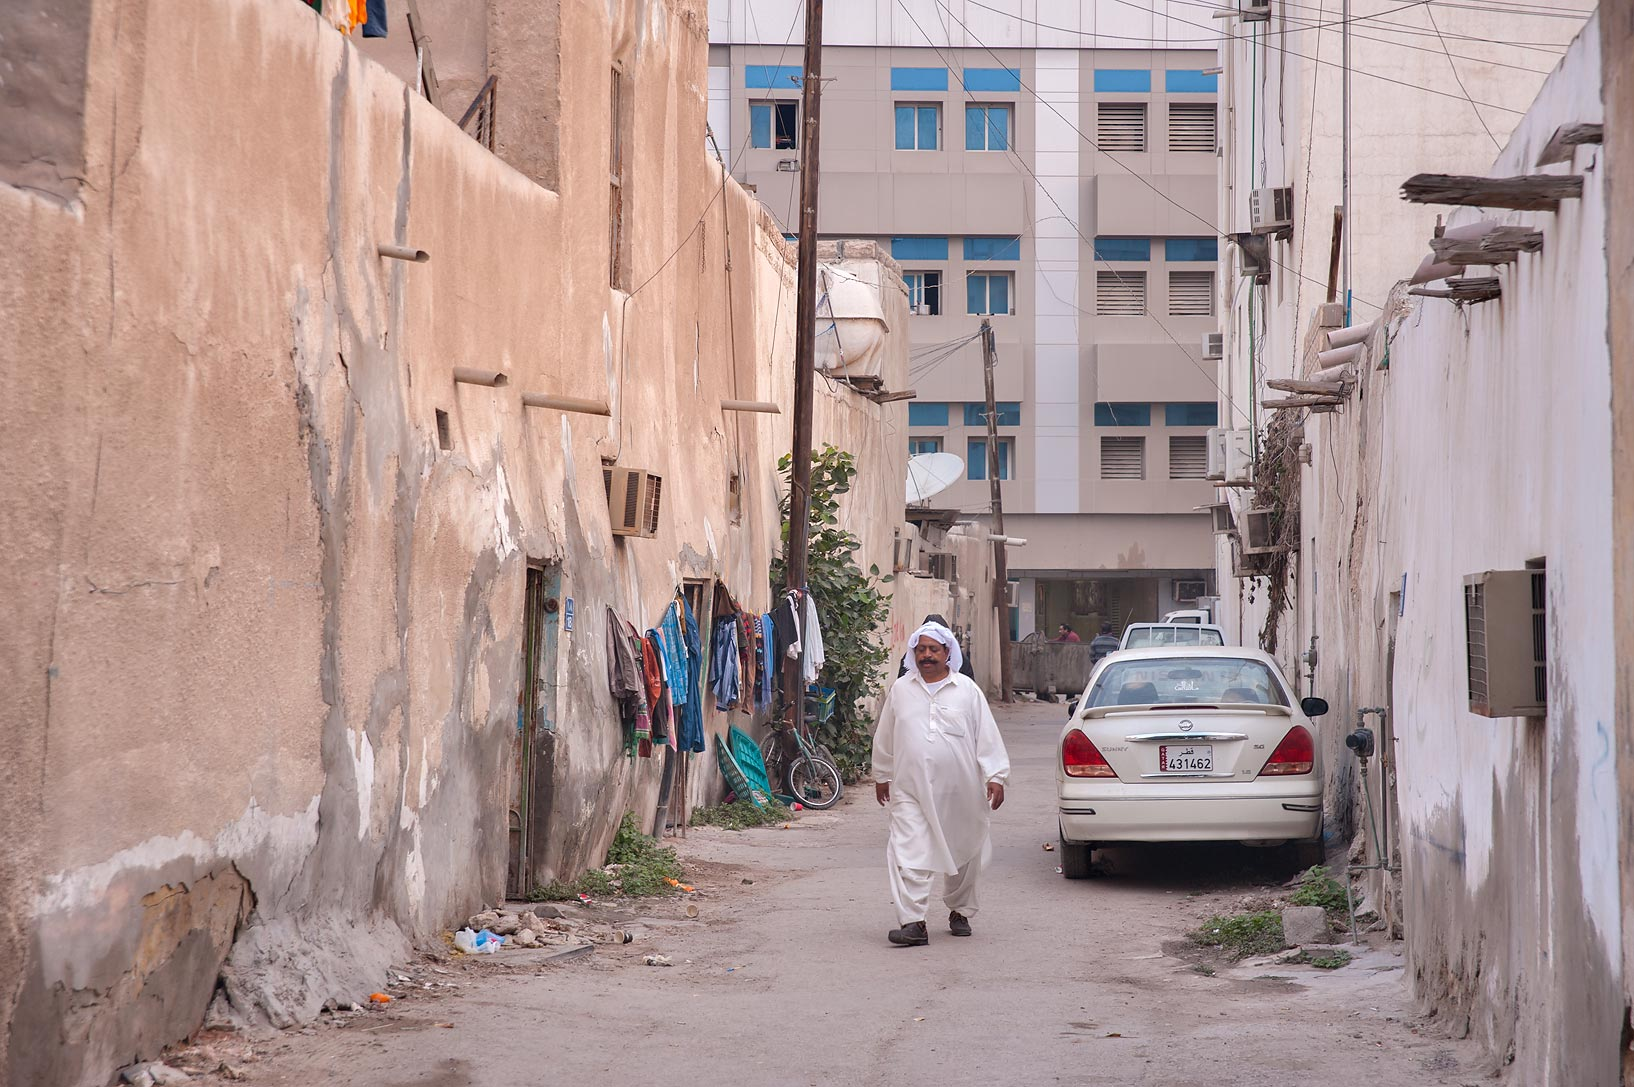 Area of Umm Wishad St. in Musheirib neighborhood. Doha, Qatar